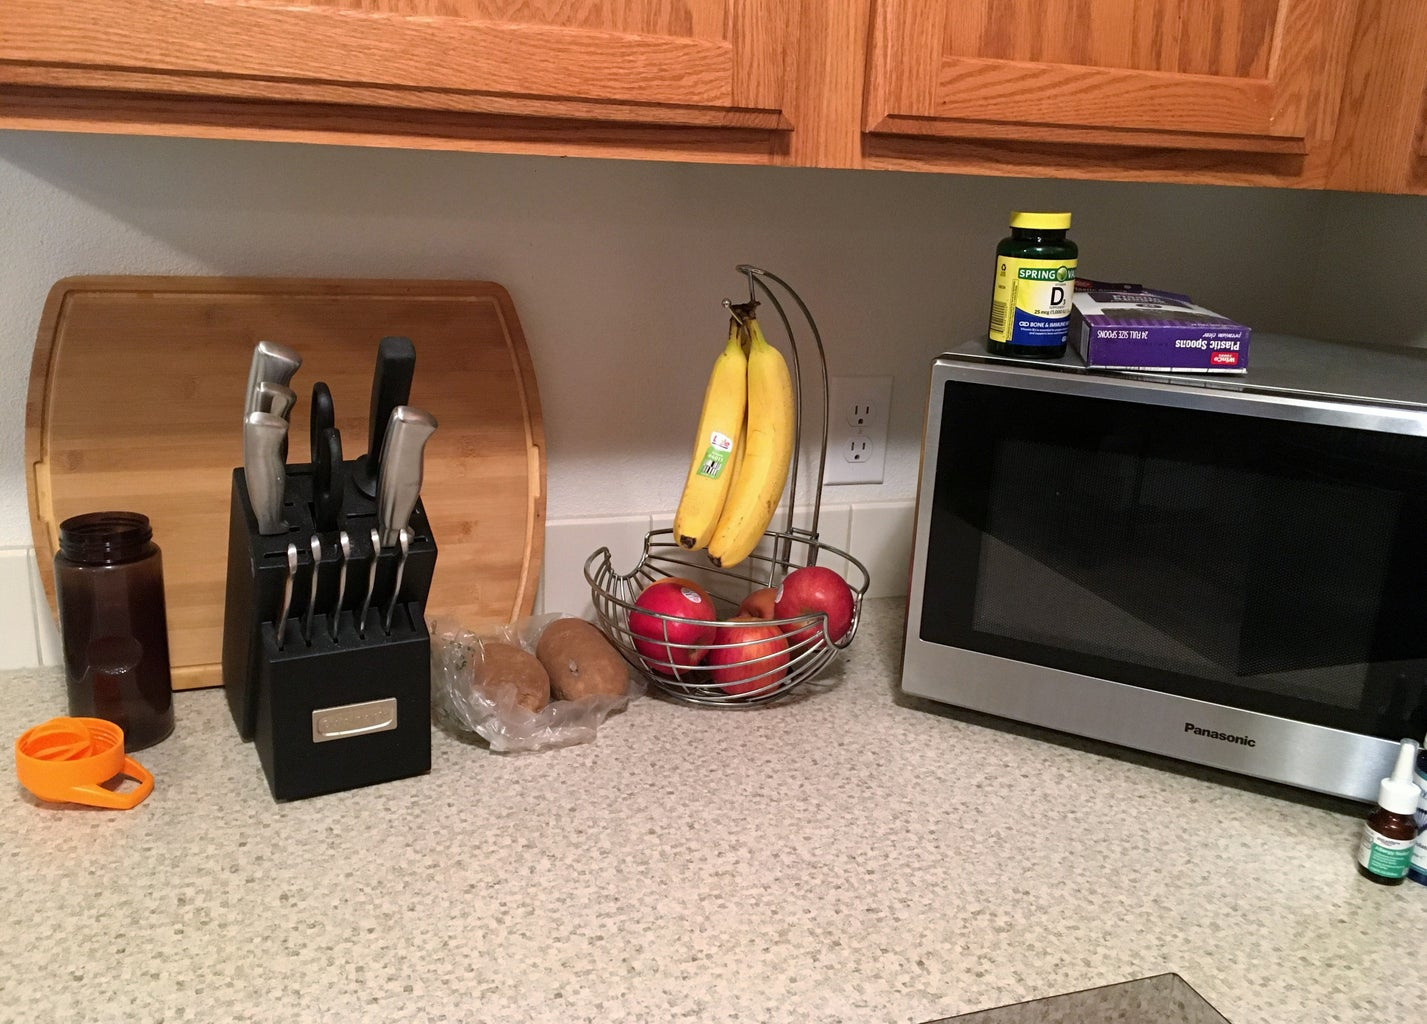 Declutter Your Counters